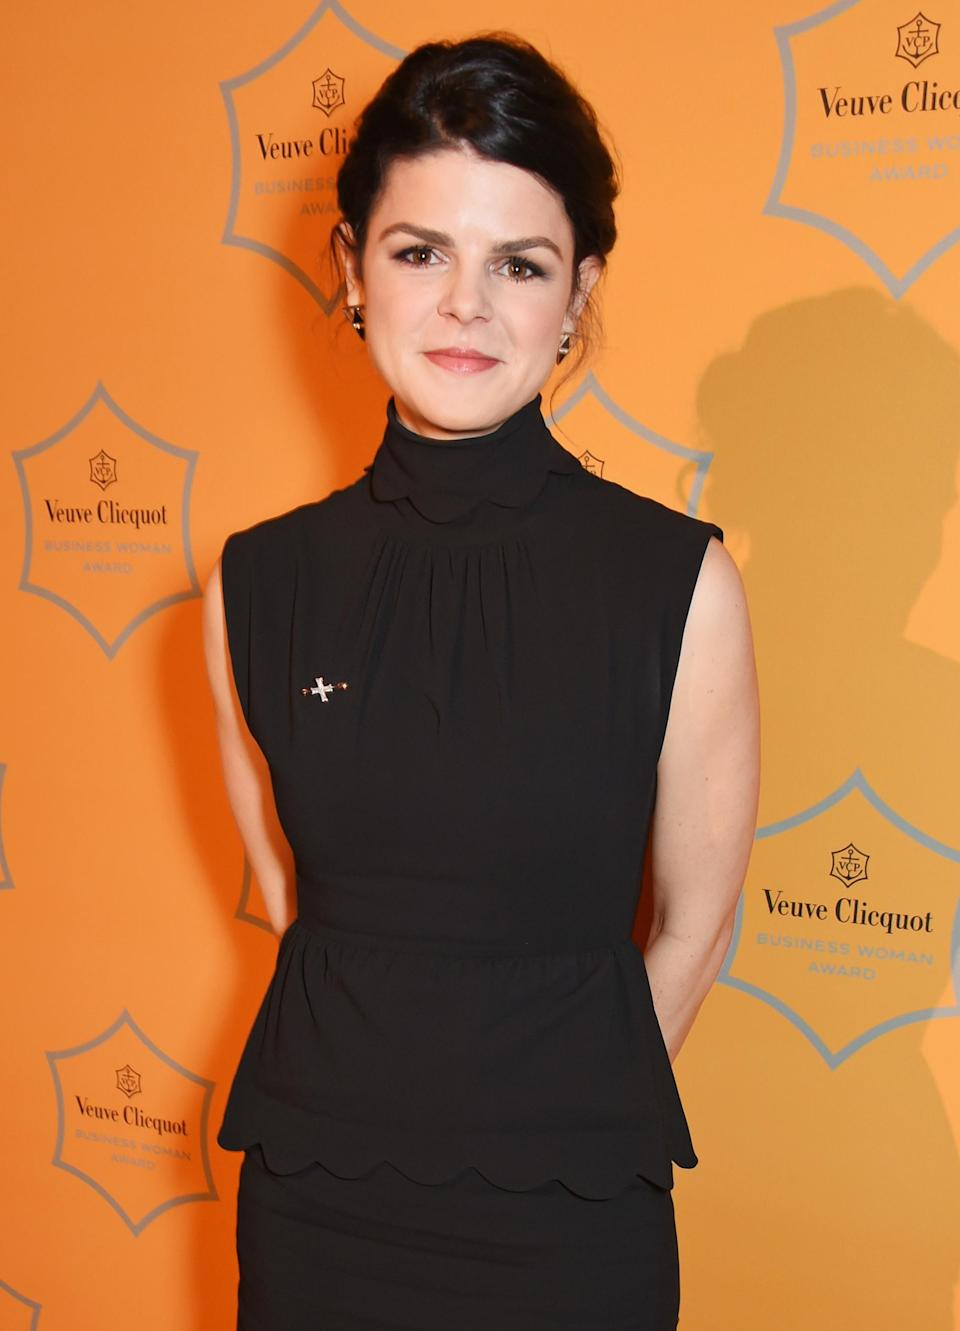 Alice Bentinck attends the Veuve Clicquot Business Woman Awards at Claridges Hotel in London, 2017 . (Photo: David M Benett/Dave Benett/Getty Images)